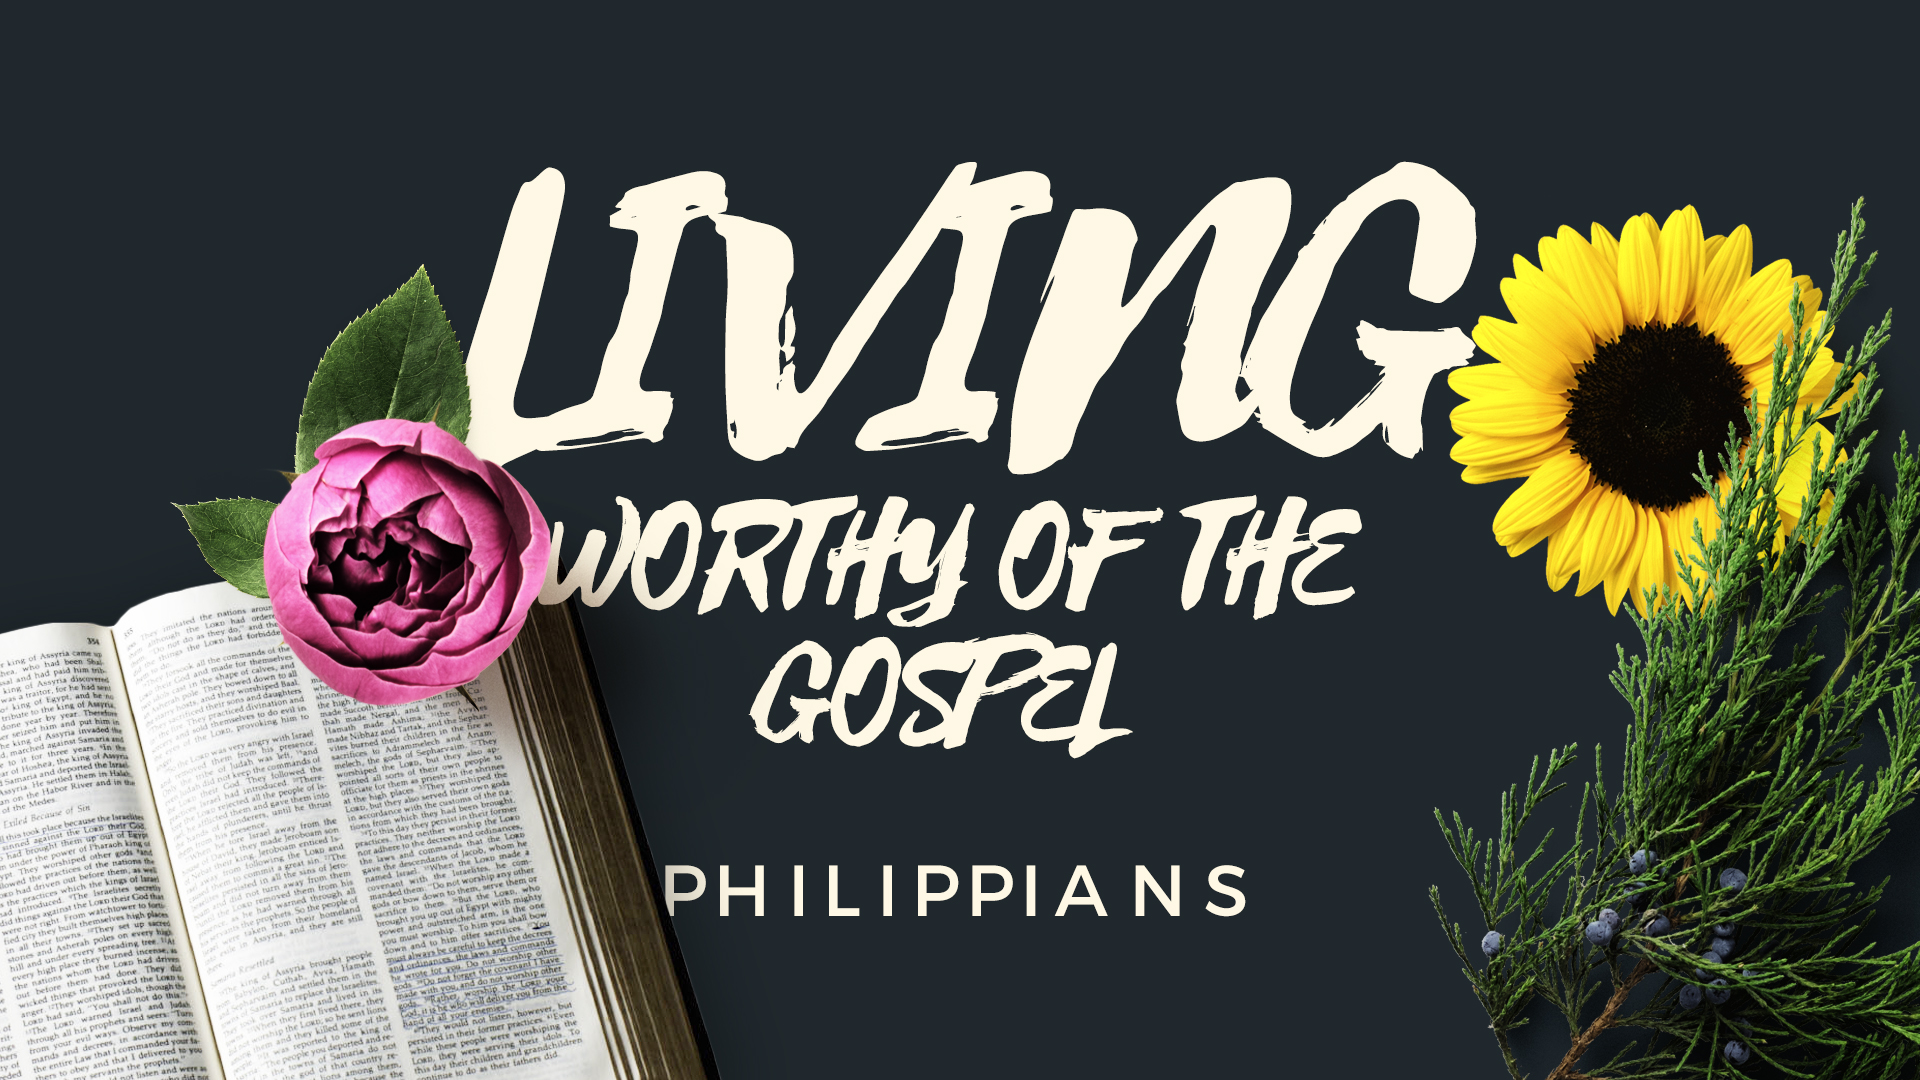 Living worthy of the gospel: Philippians